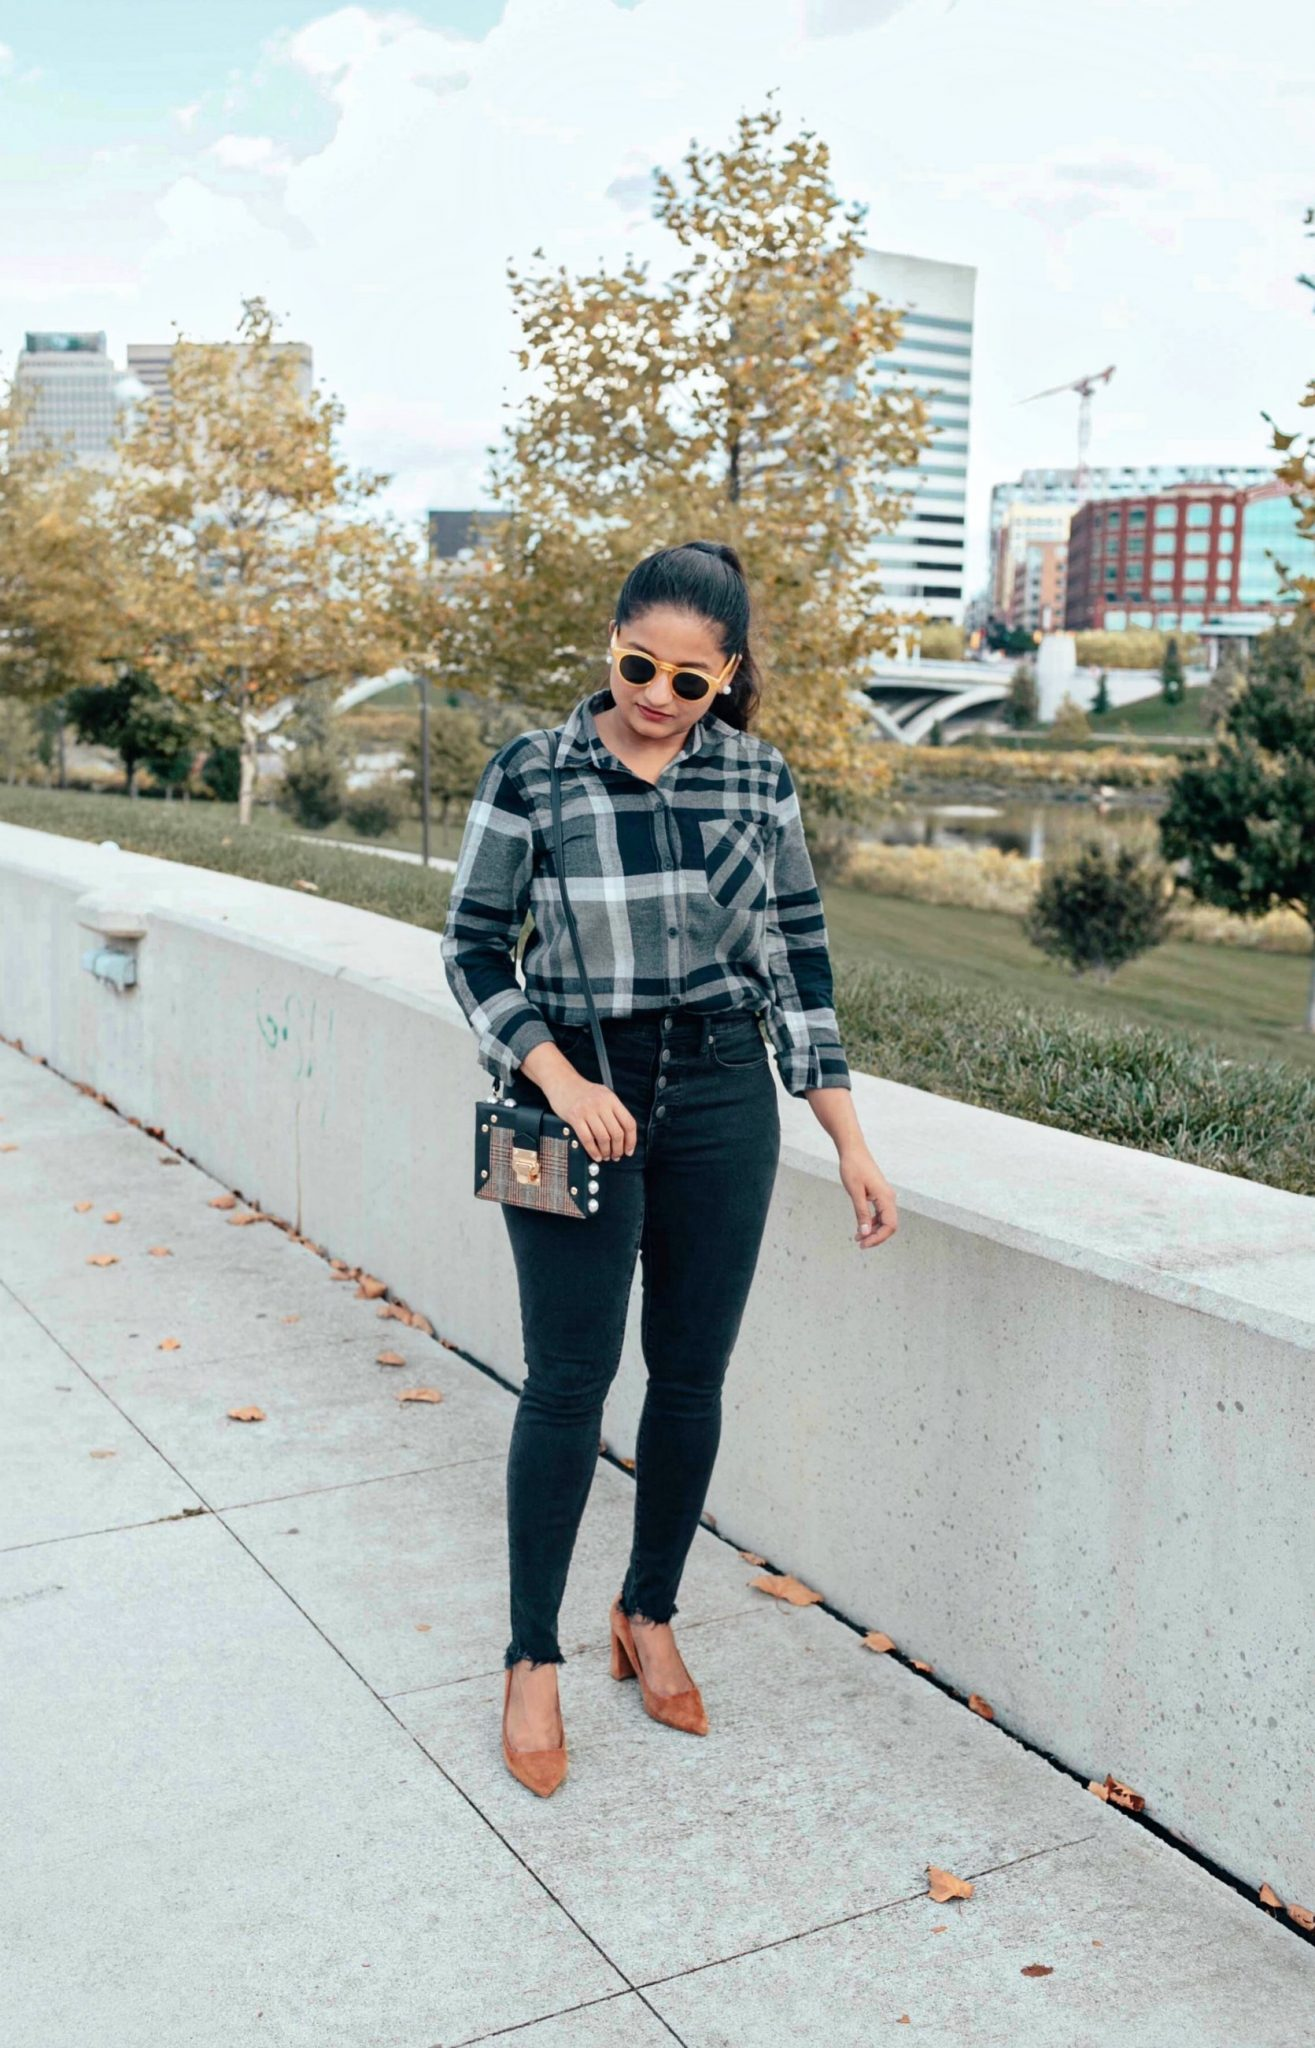 wearing madewell 9 High-Rise Skinny Jeans in Berkeley Black Button-Through Edition | Eddie Bauer boyfriend flannel shirt styled 4 ways, featured by top Ohio modest fashion blog, Dreaming Loud